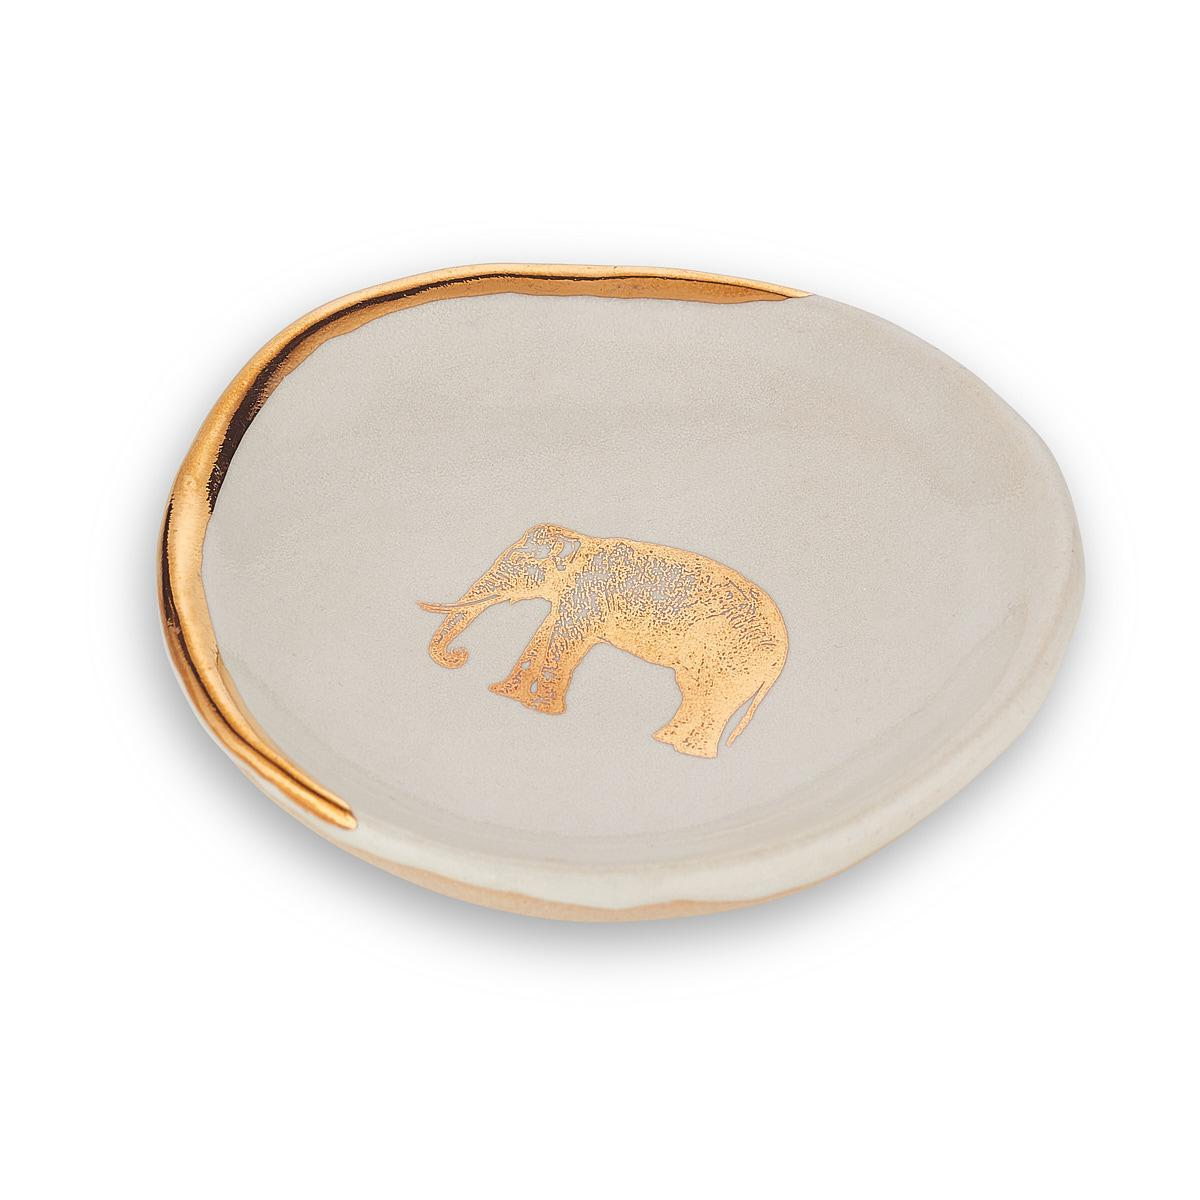 Small White Elephant Plate